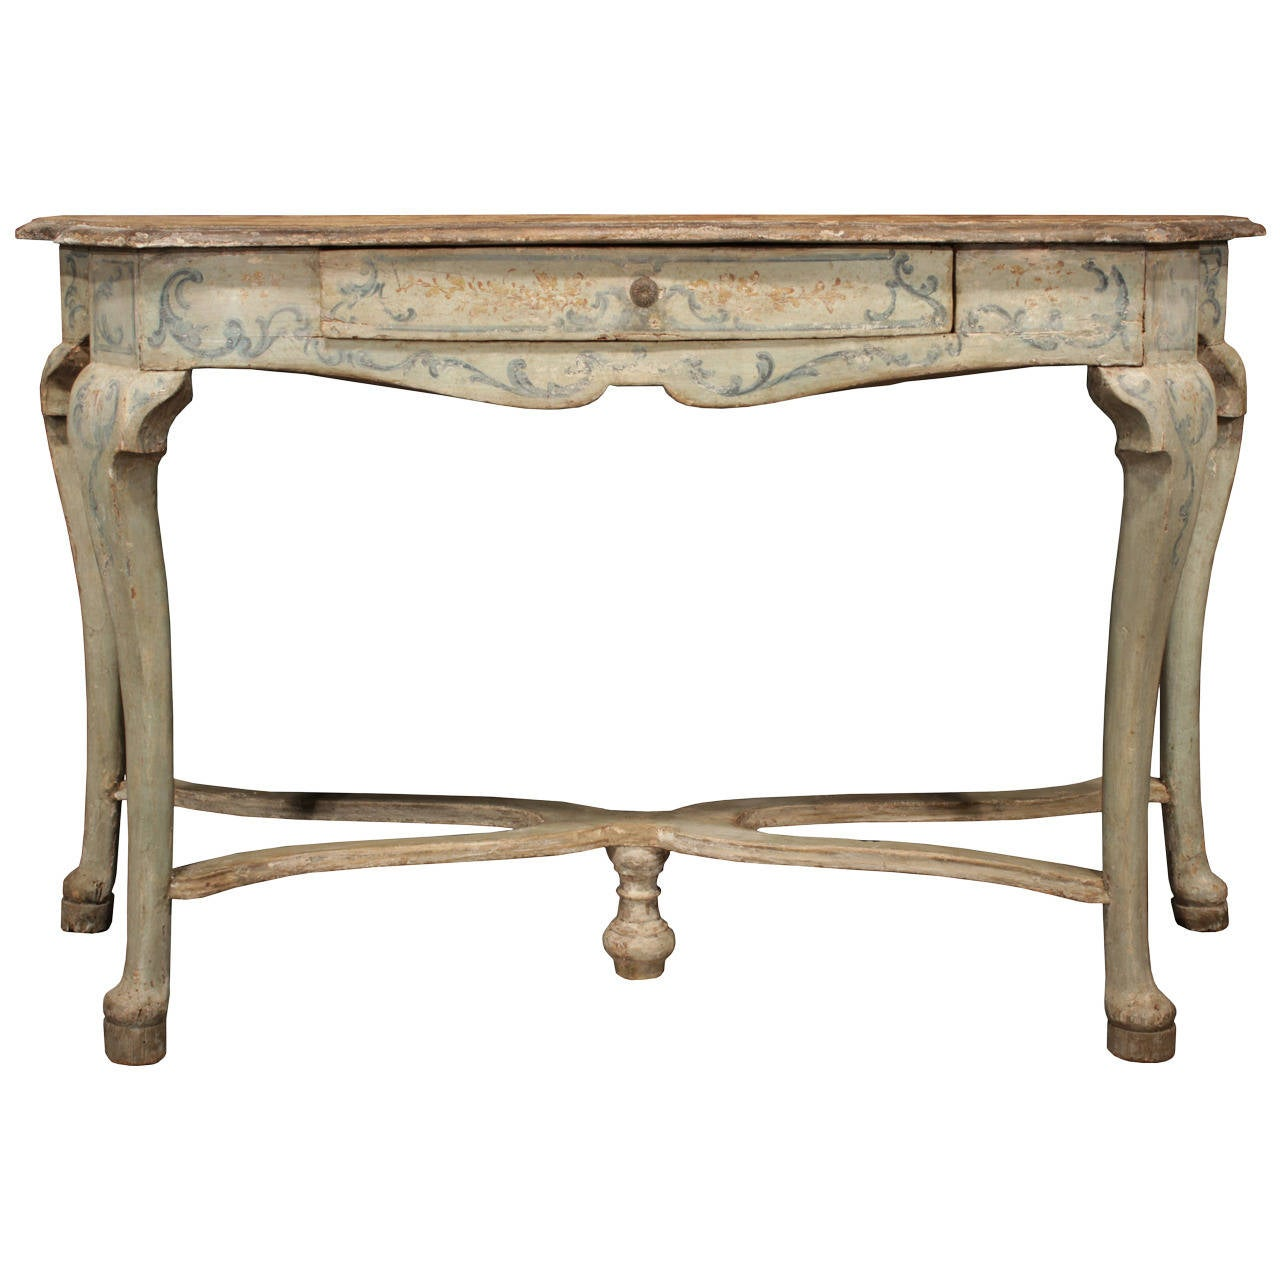 Italian early 18th century louis xv period patinated console table for sale at 1stdibs - Table louis xv ...